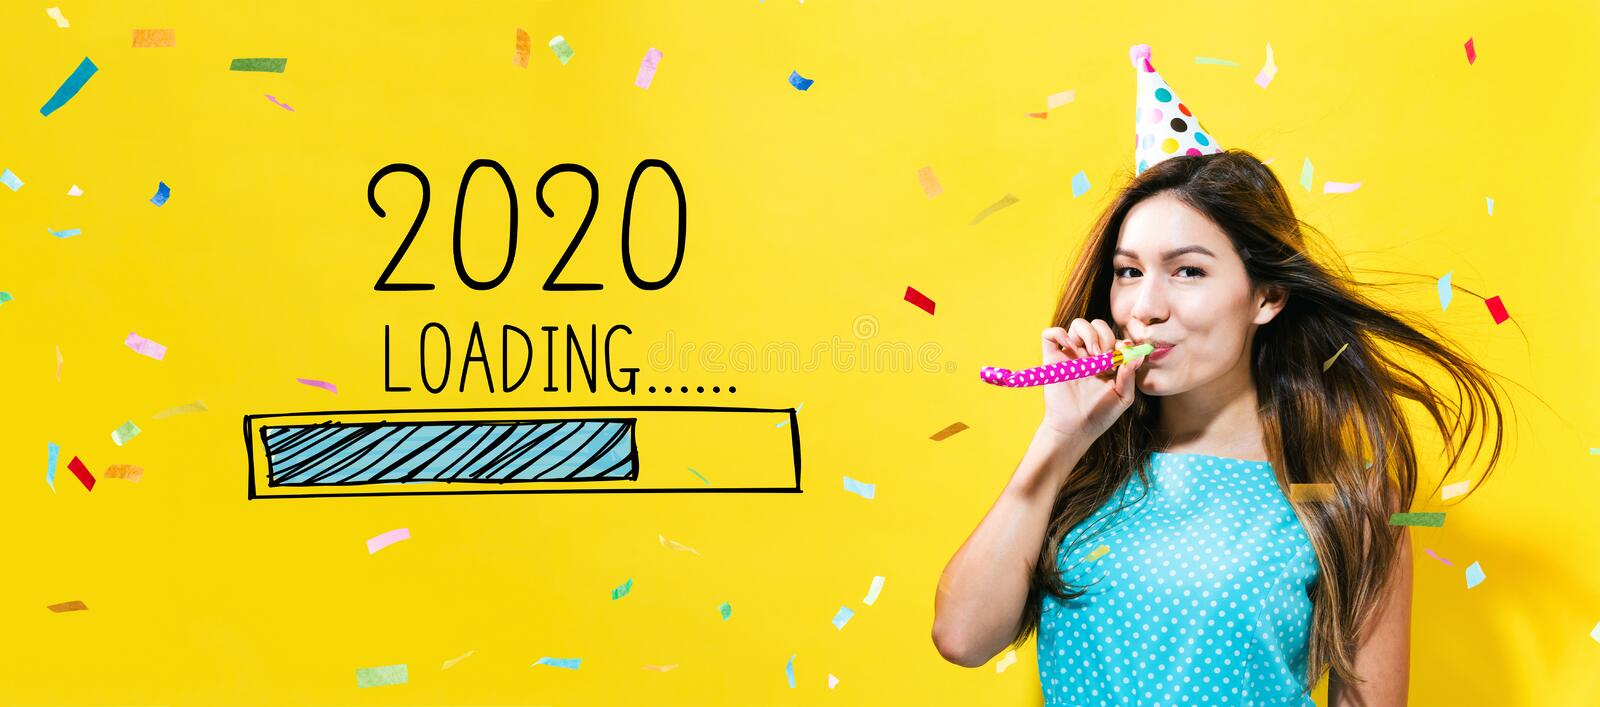 Loading new year 2020 with young woman with party theme stock photo